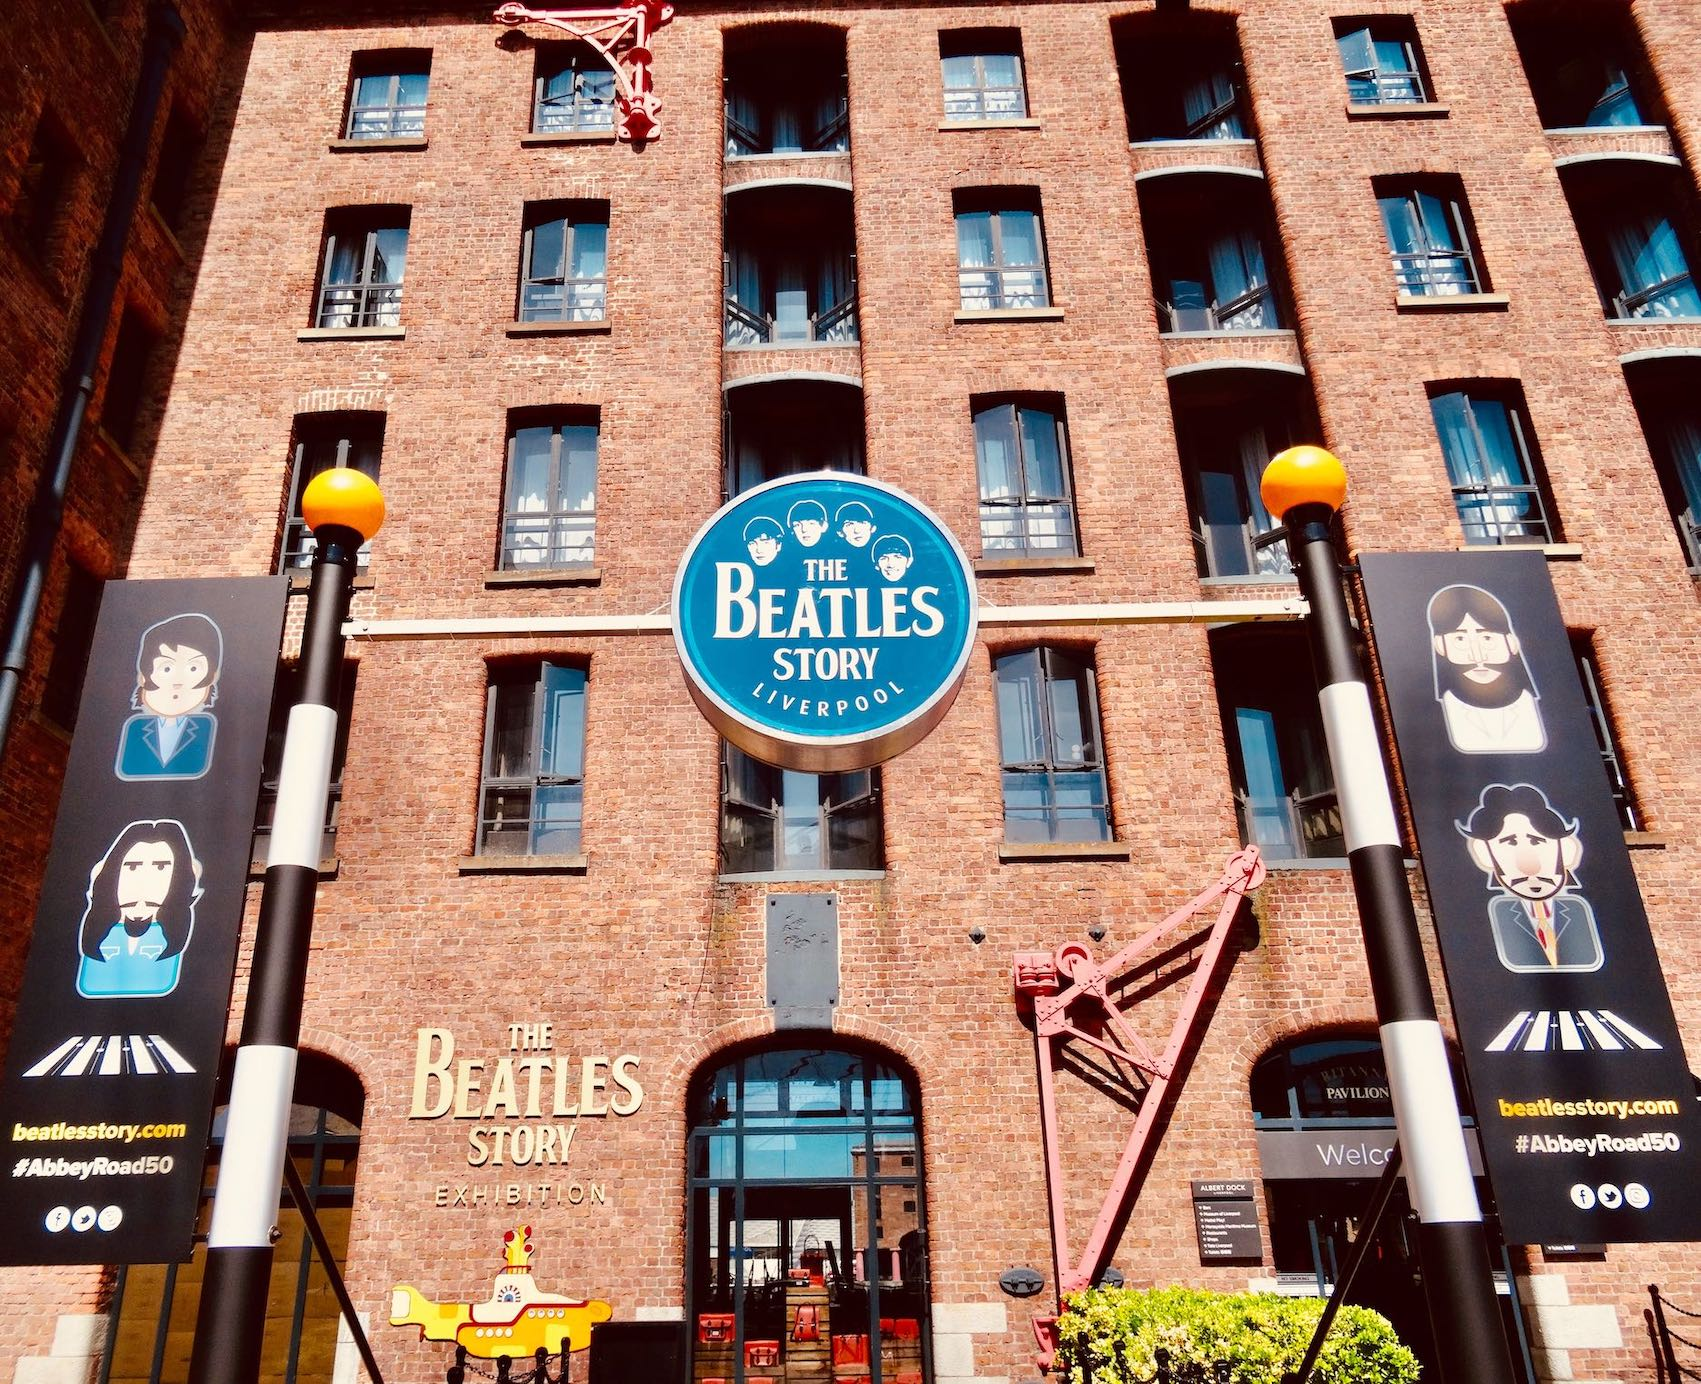 The Beatles Story in Liverpool.